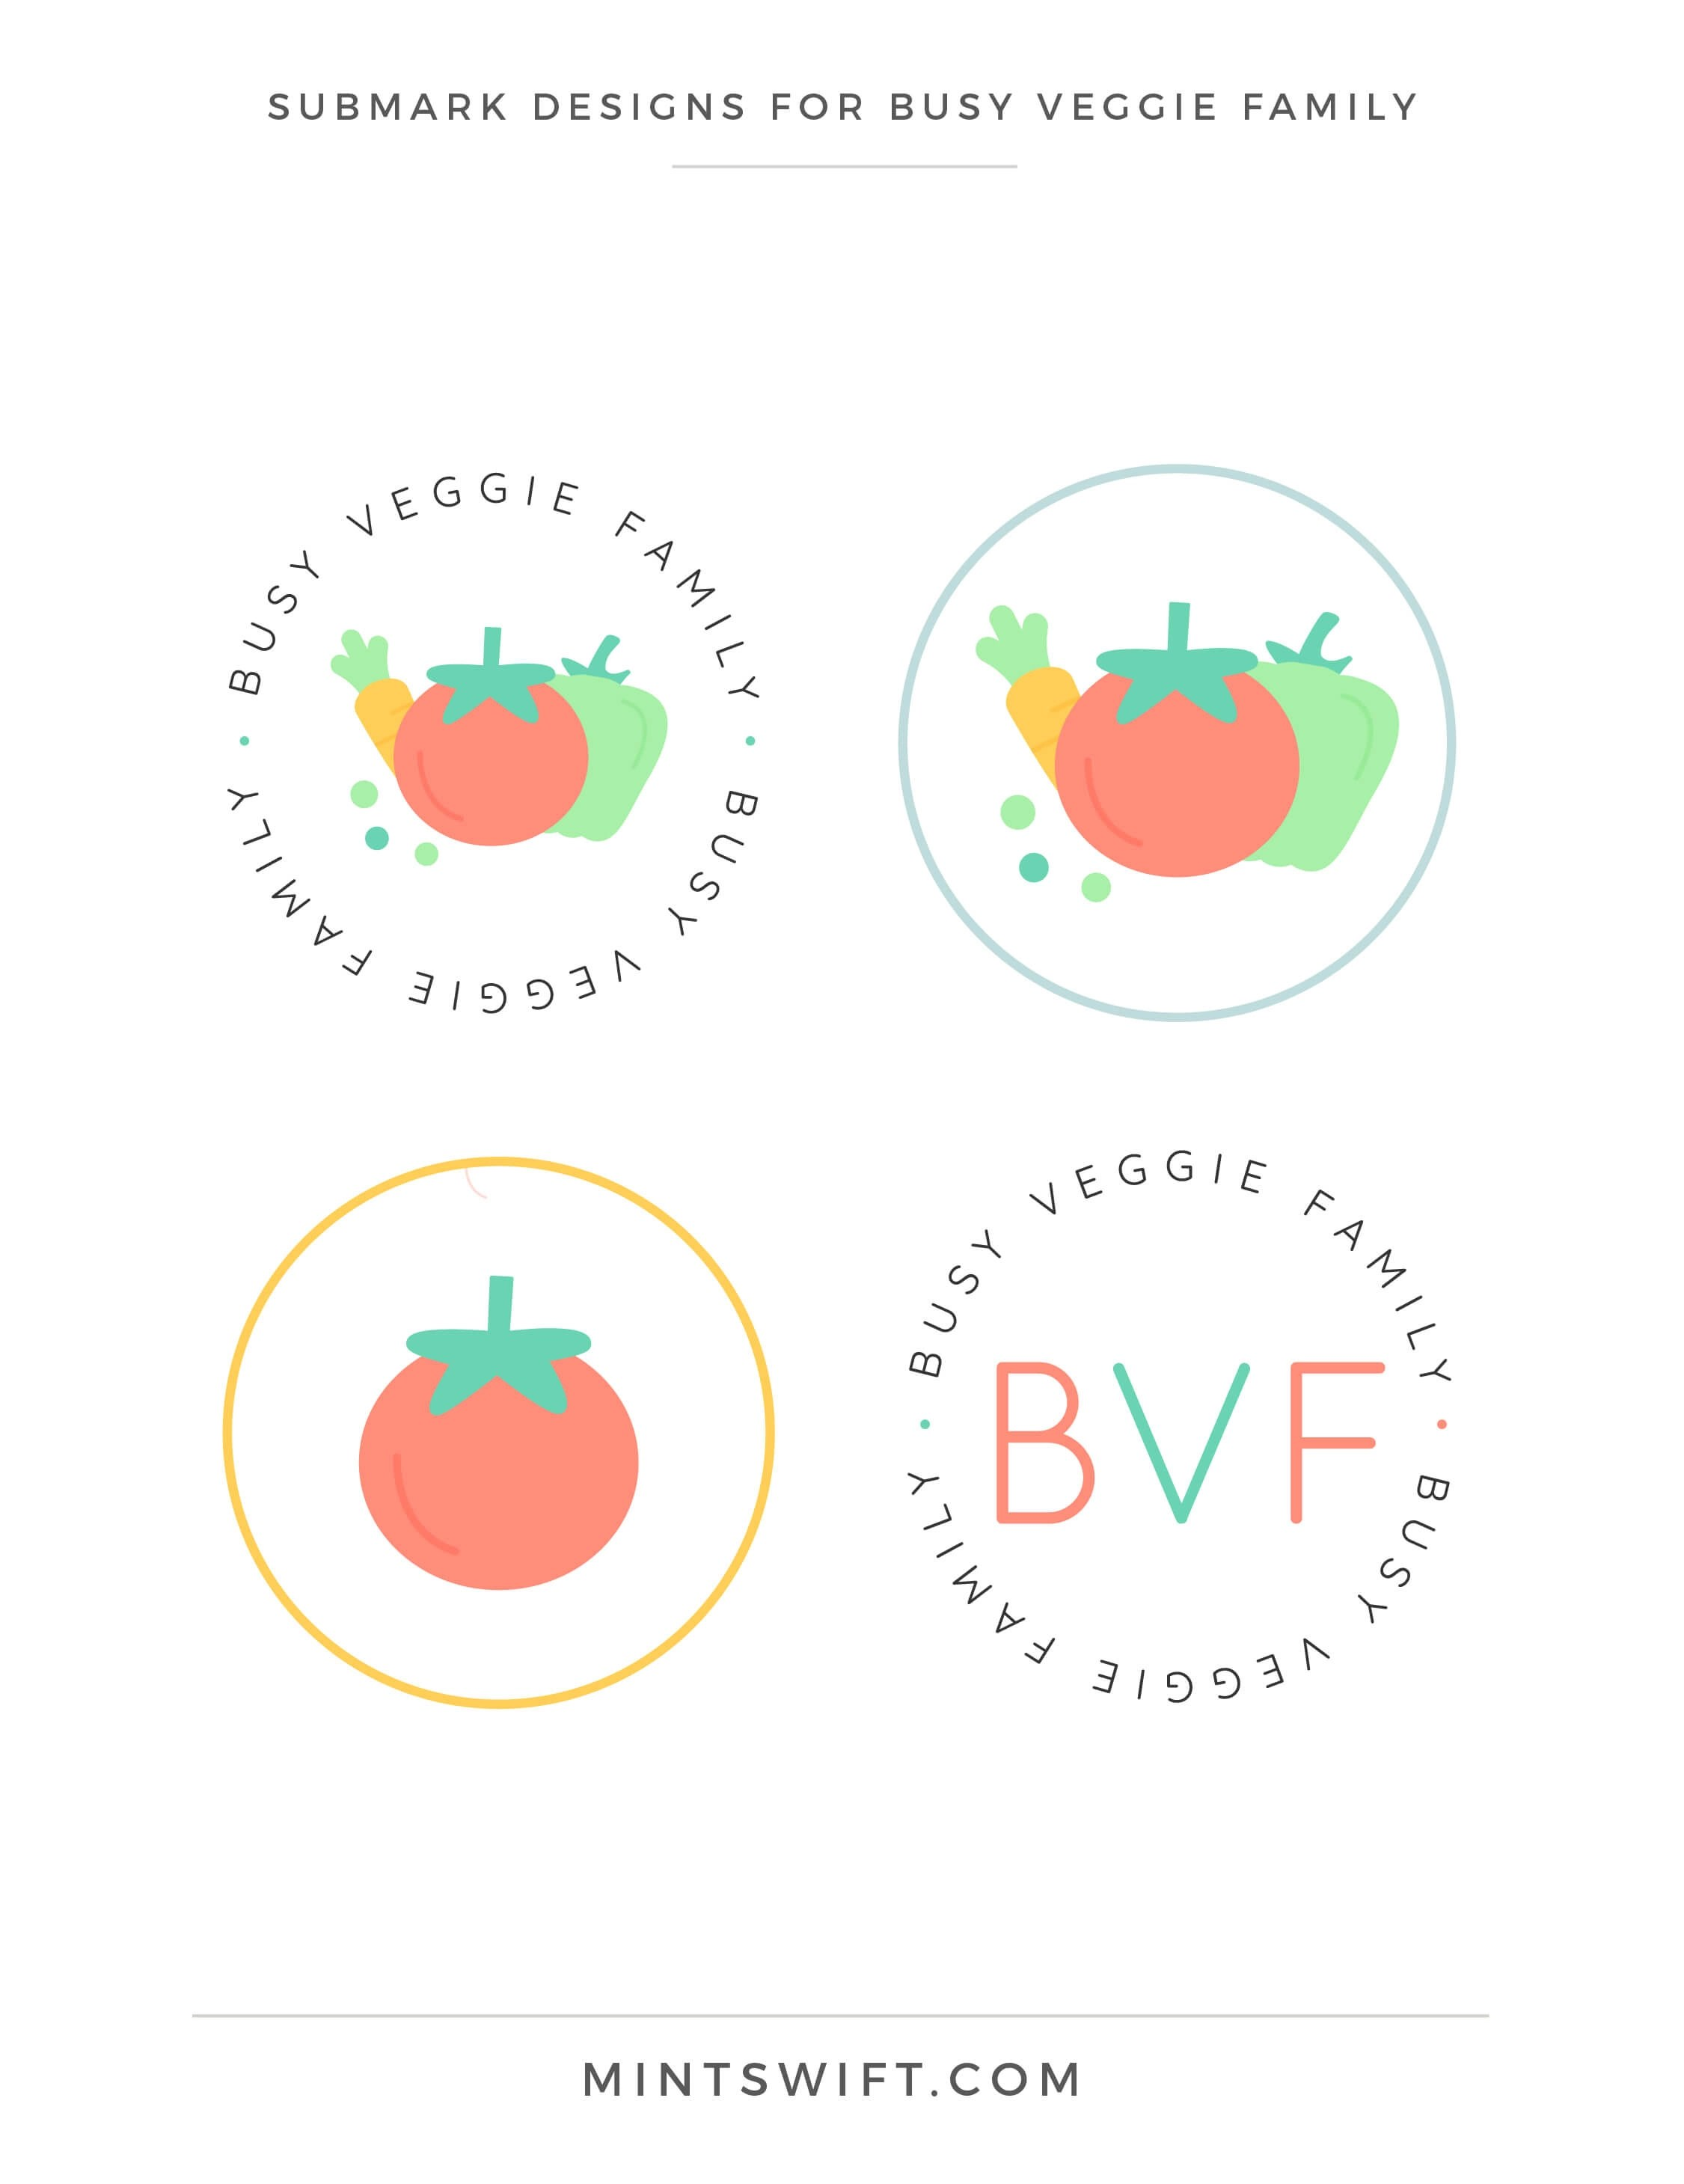 Busy Veggie Family - Submark Designs - Brand & Website Design Package - MintSwift